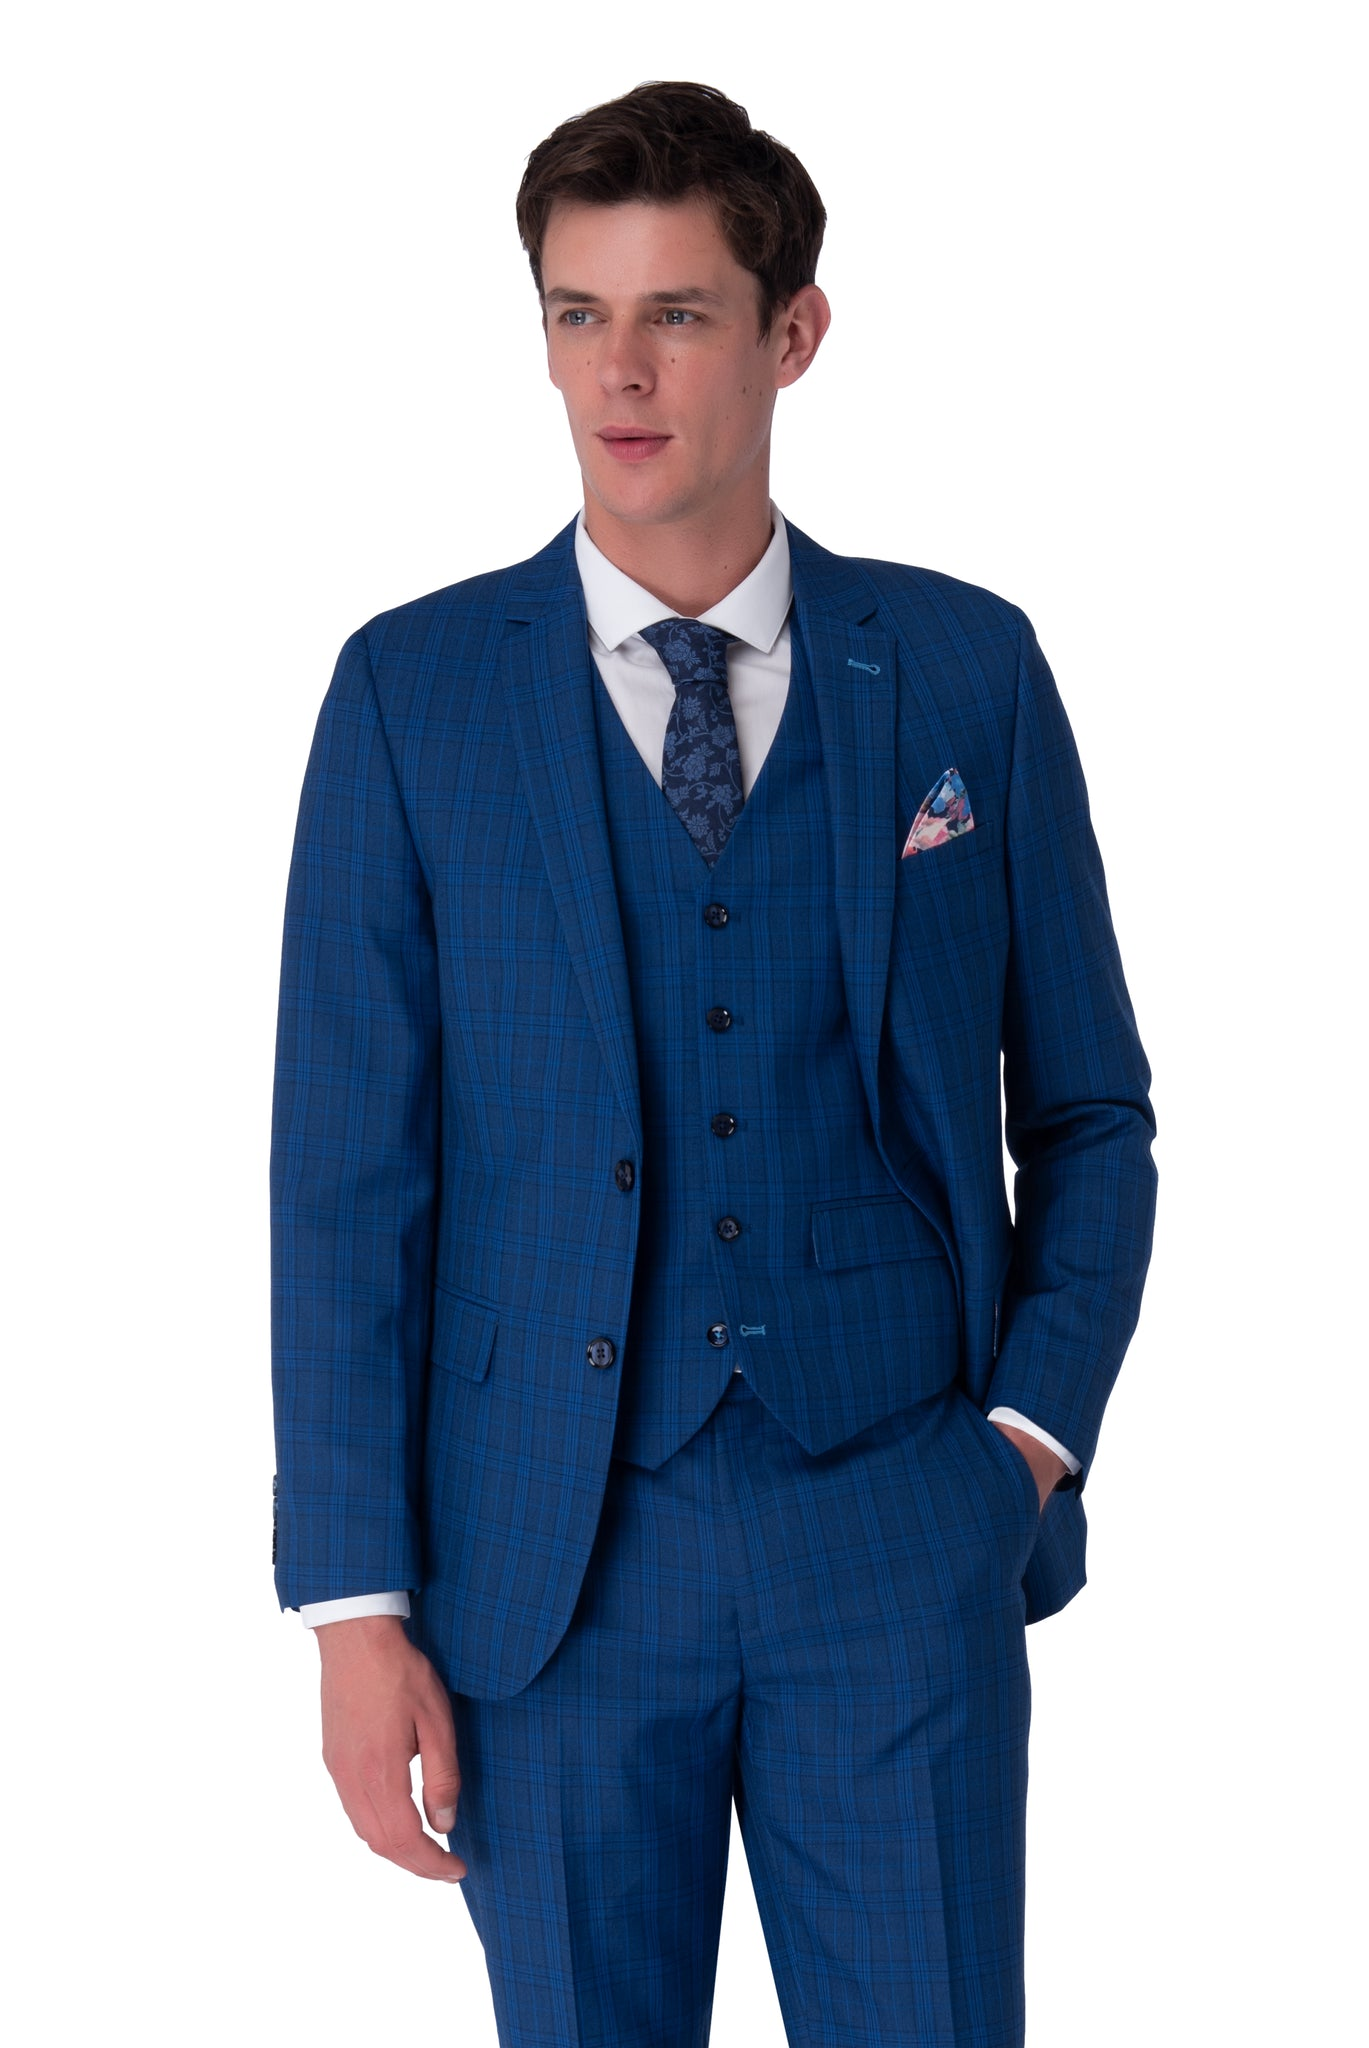 JACK Royal Blue Check Three Piece Suit